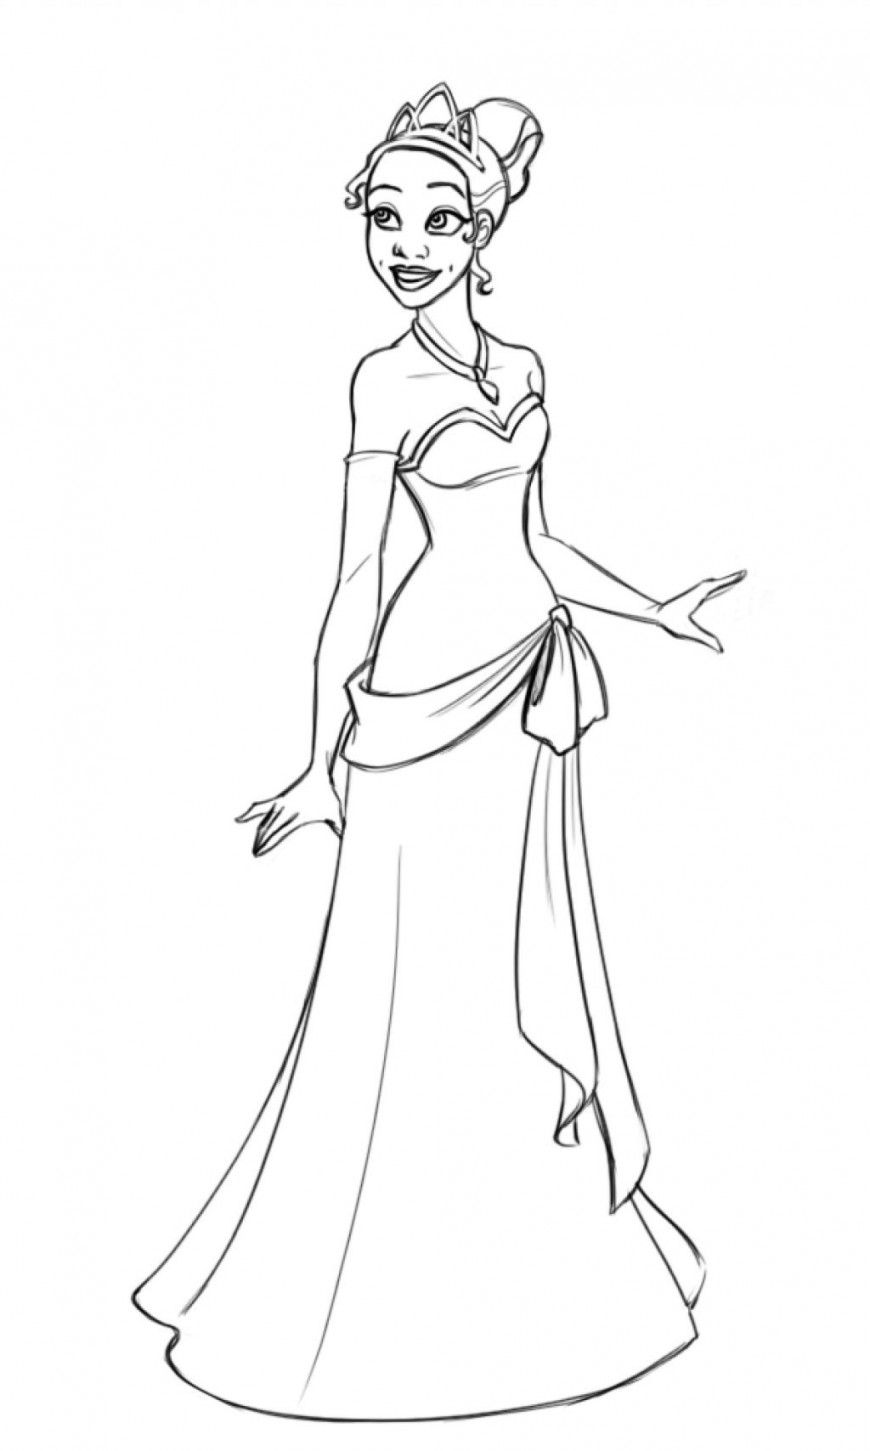 And The Printable Kids The Princess And The Frog Coloring Pages